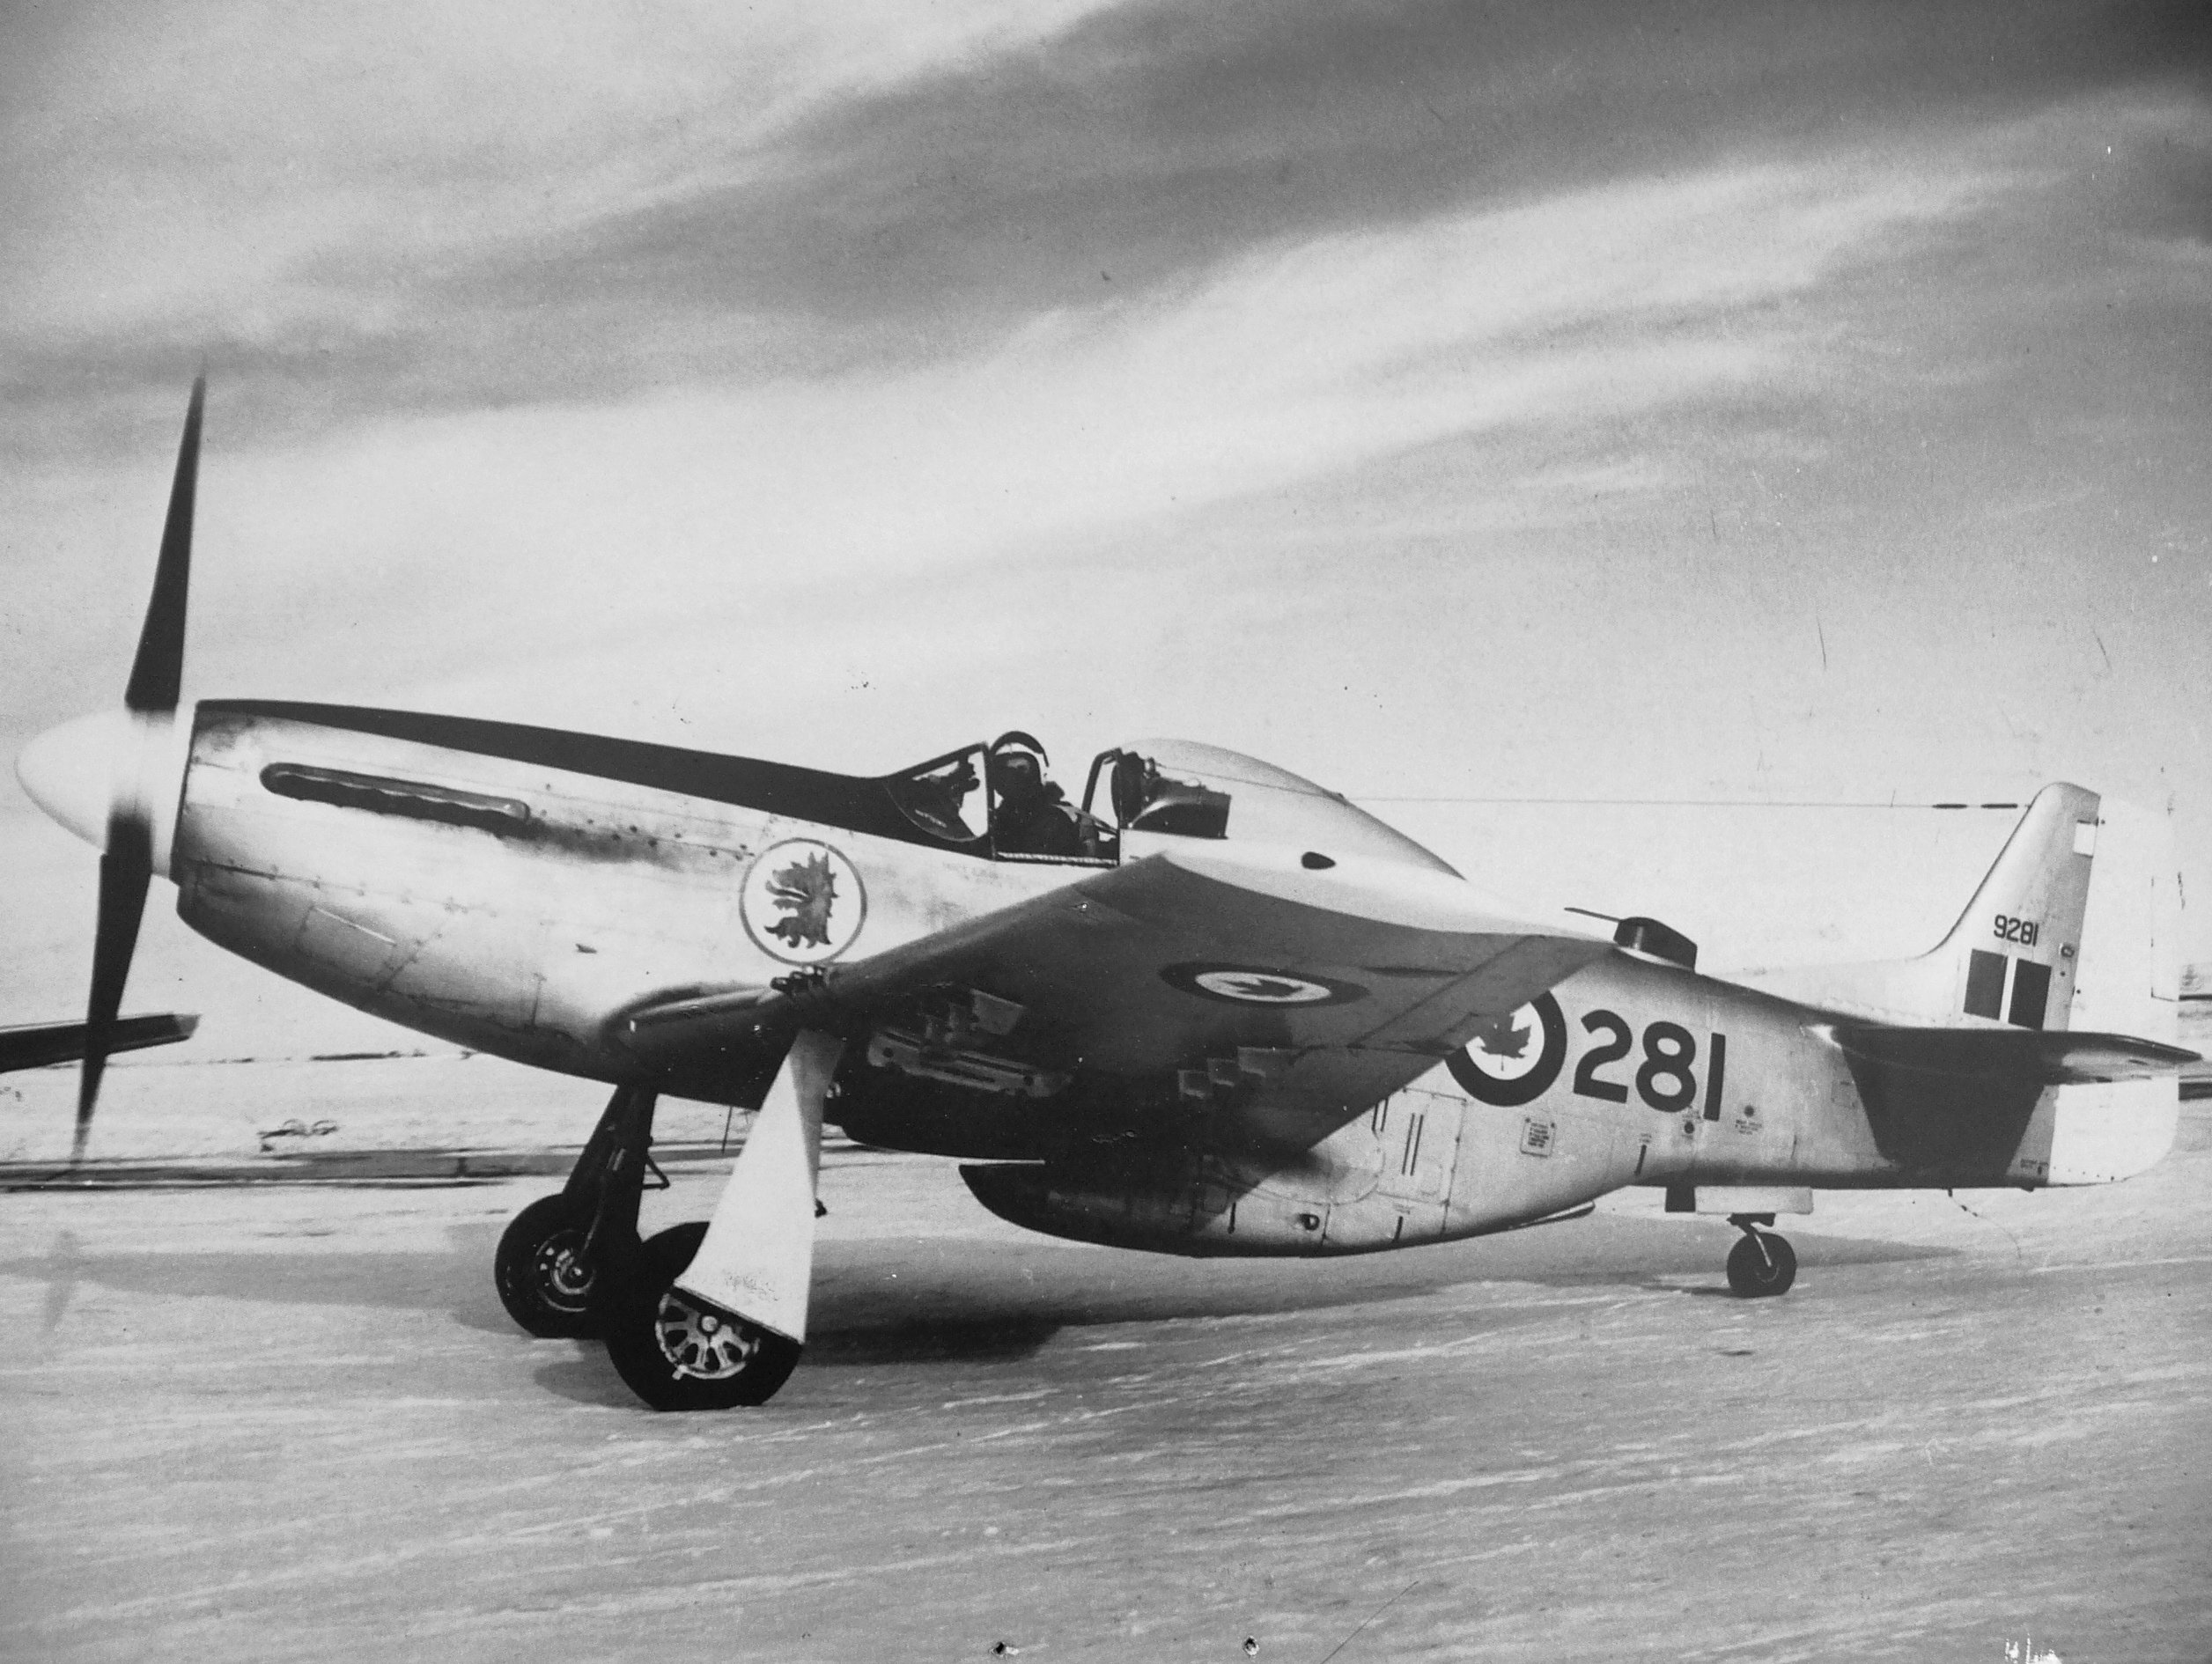 MUSTANG_RCAF_9221